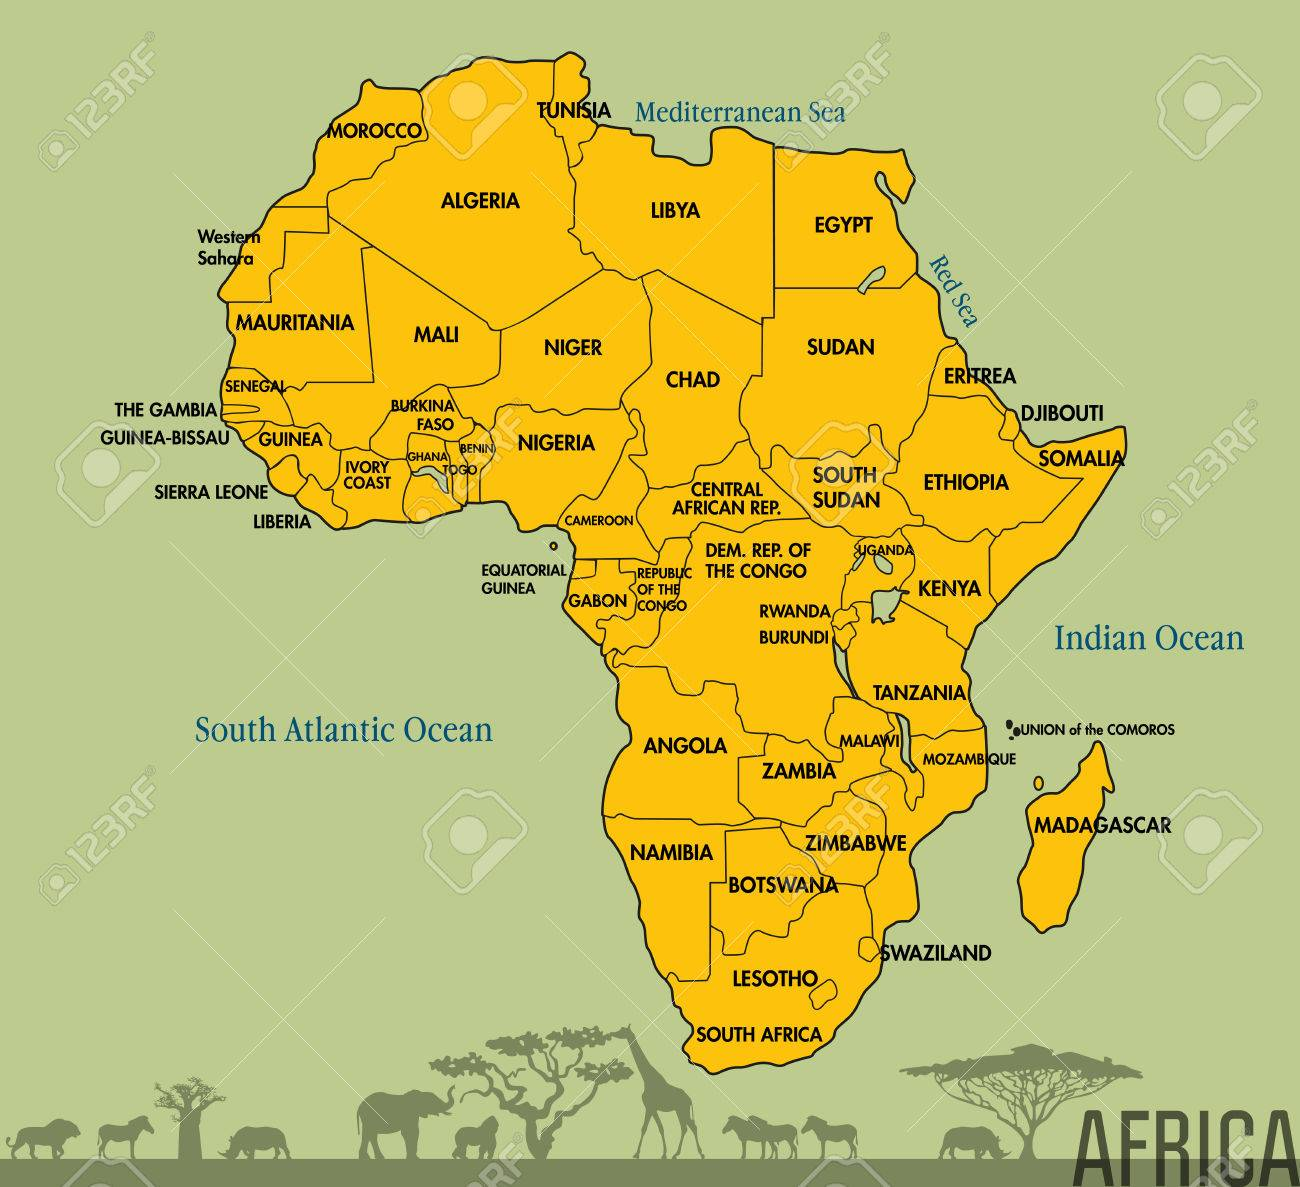 Highly Detailed Political Map Of Continent, Located On The African